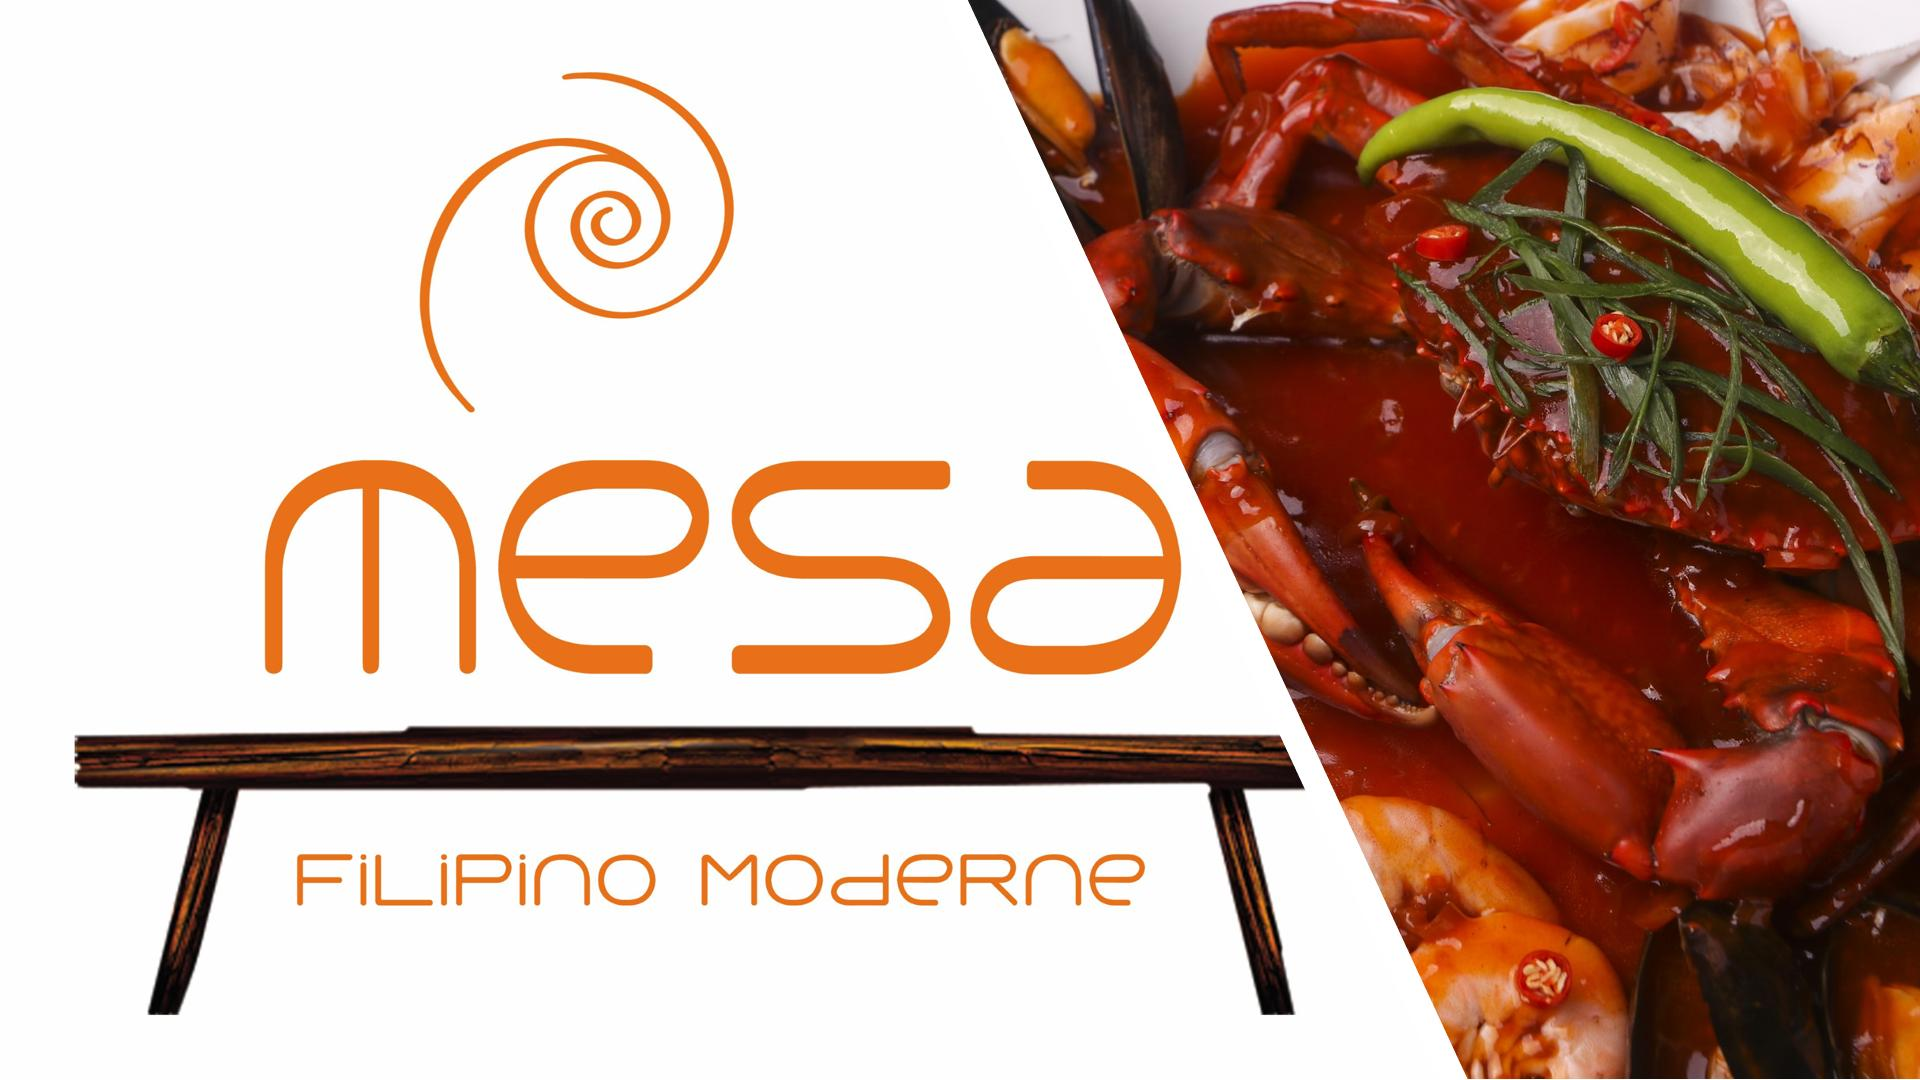 Mesa Filipino Moderne P5000 Gift Voucher By Gifted.ph.